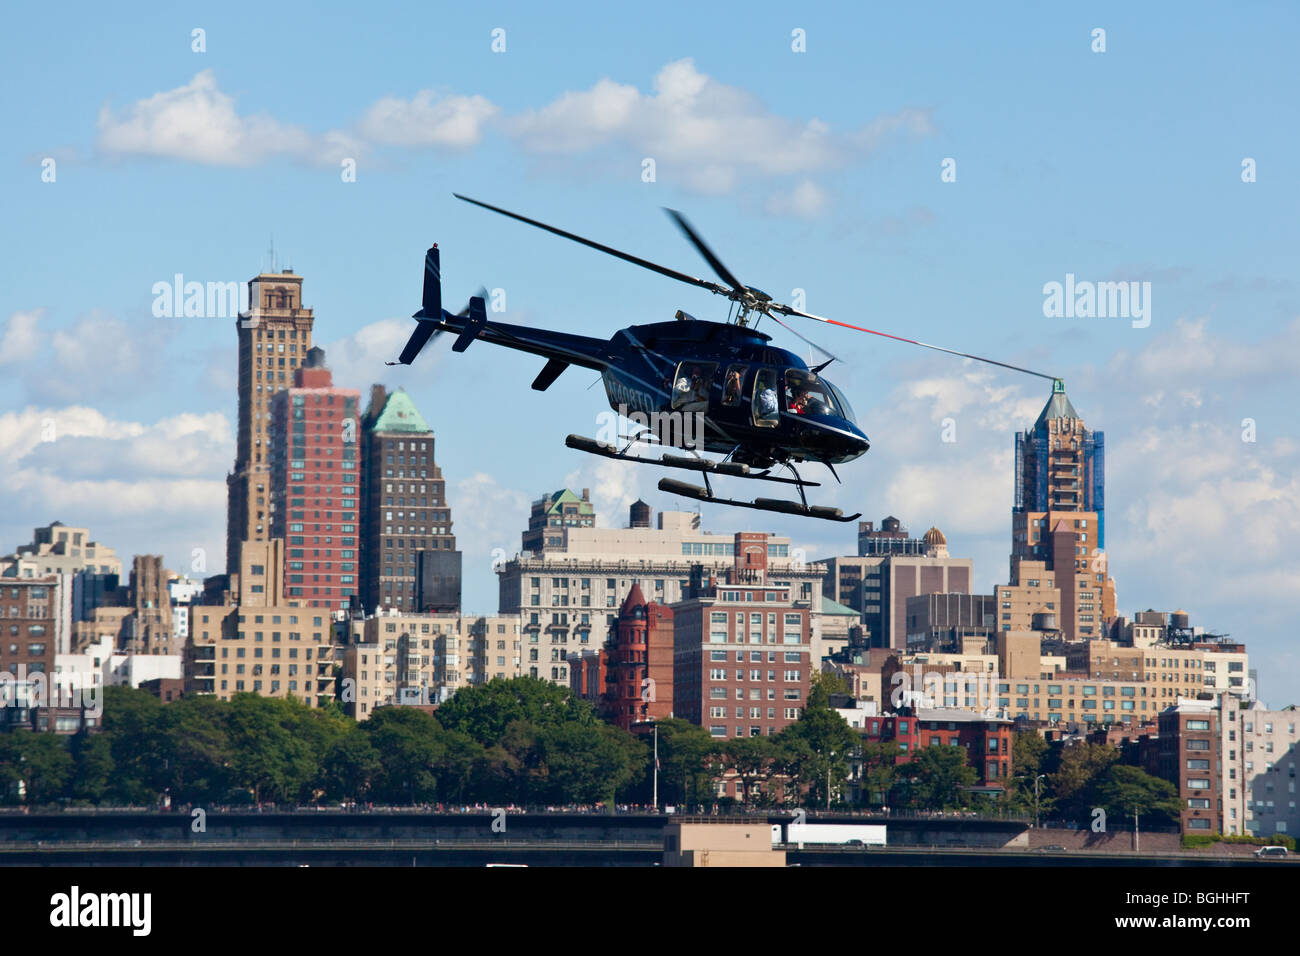 Tourists in on a Helicopter Ride in Manhattan, New York City - Stock Image